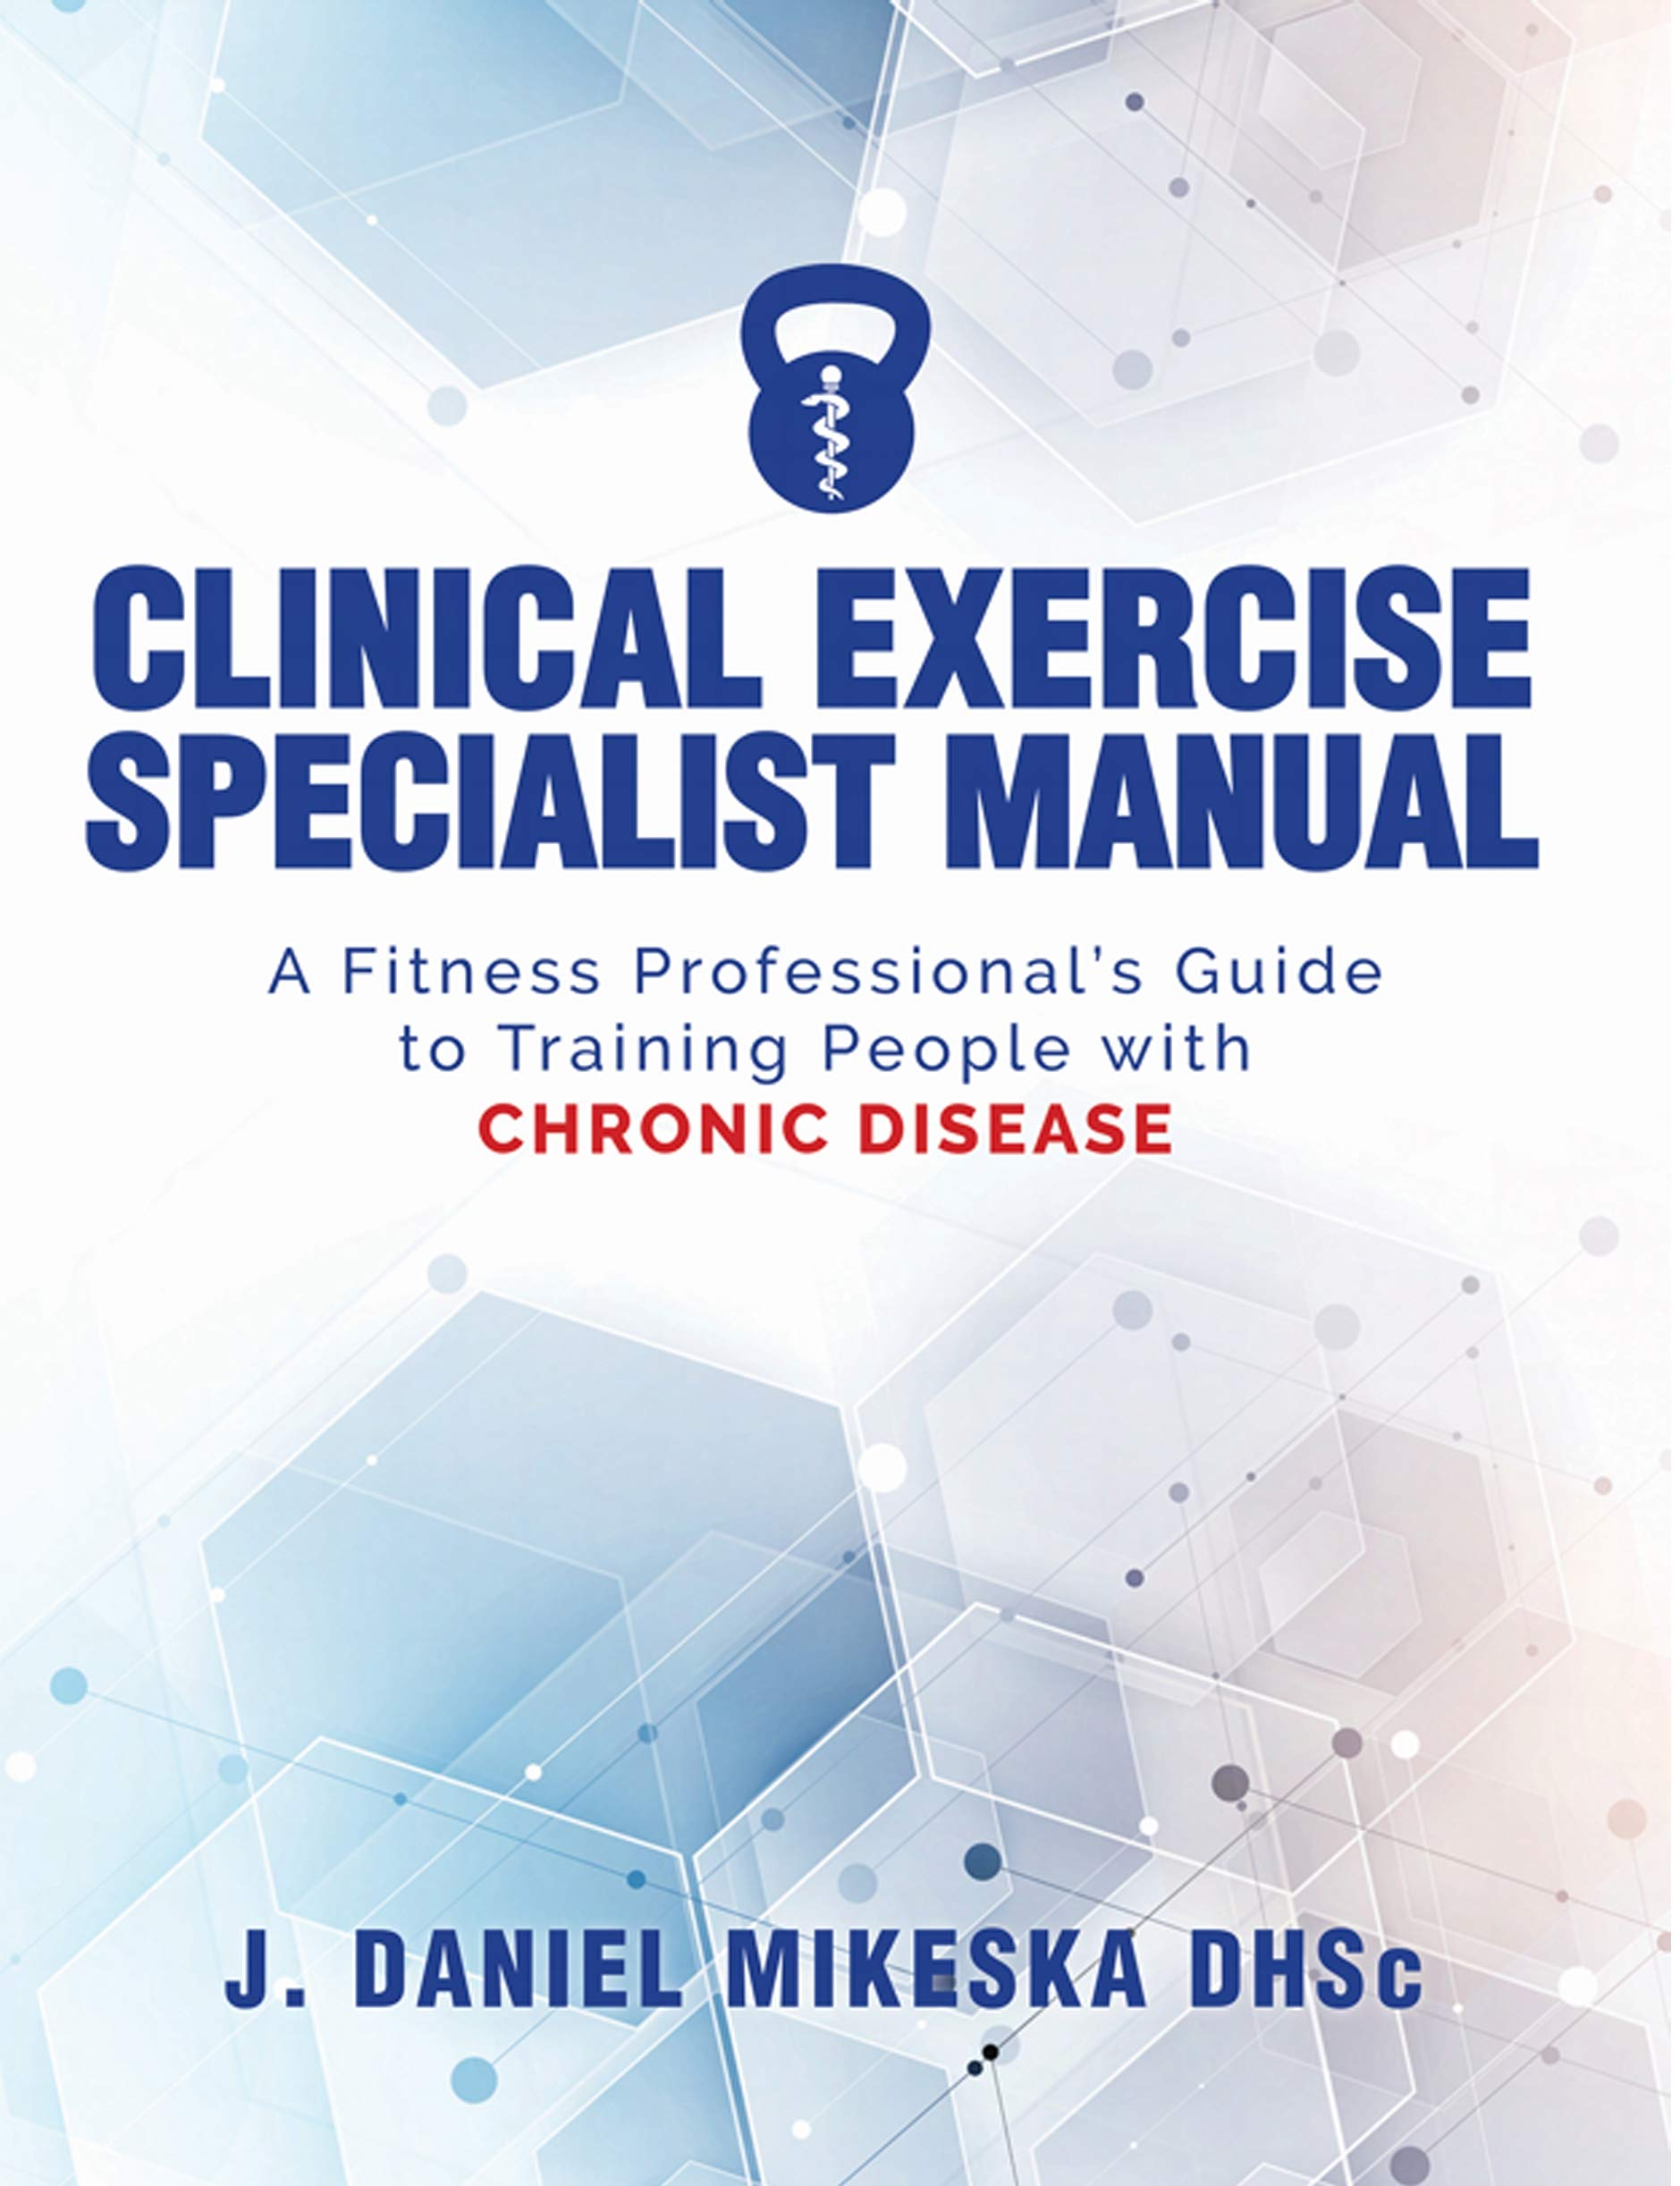 Image OfClinical Exercise Specialist Manual: A Fitness Professional's Guide To Exercise And Chronic Disease